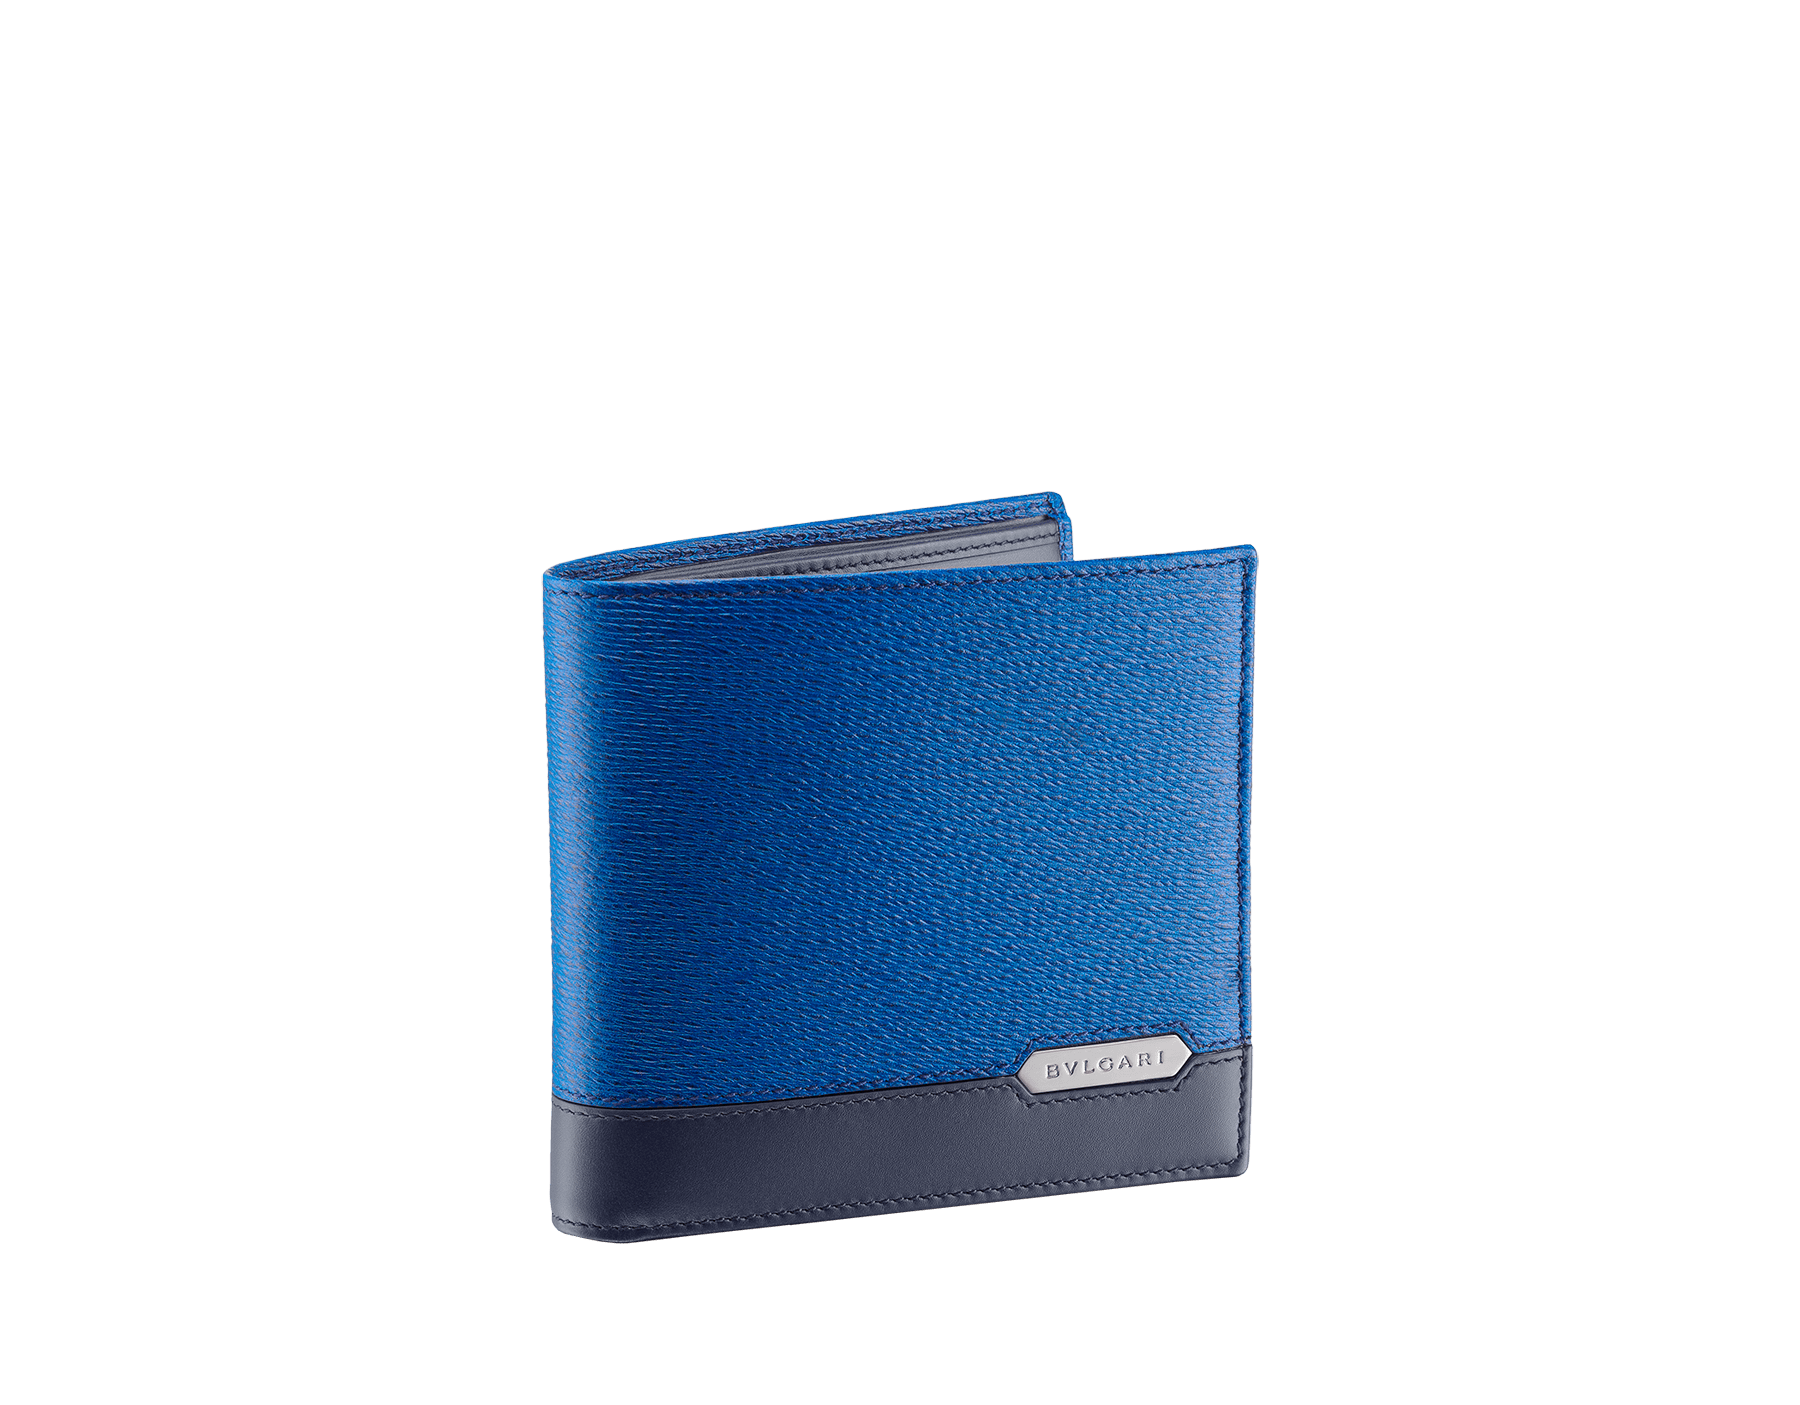 Serpenti Scaglie men's wallet in cobalt tourmaline grazed calf leather and dark denim calf leather. Bvlgari logo engraved on the hexagonal scaglie metal plate finished in dark ruthenium. 288603 image 1